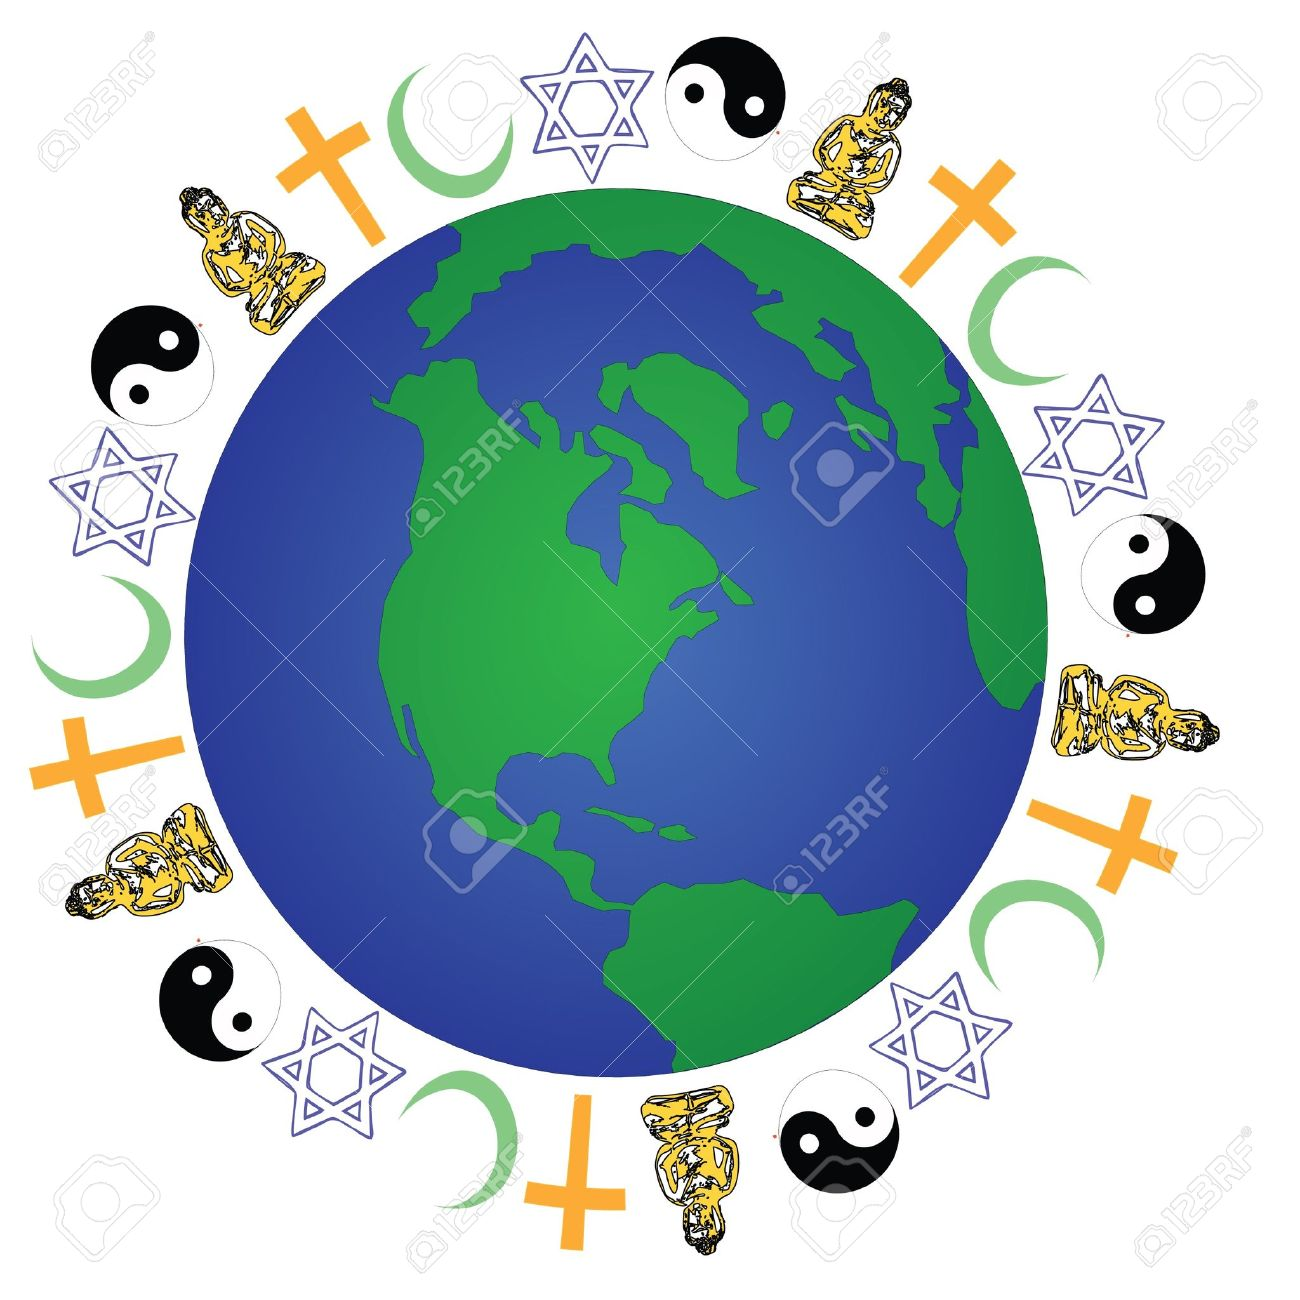 global religion royalty free cliparts vectors and stock rh 123rf com Diversity Clip Art Black and White Diversity Clip Art Black and White